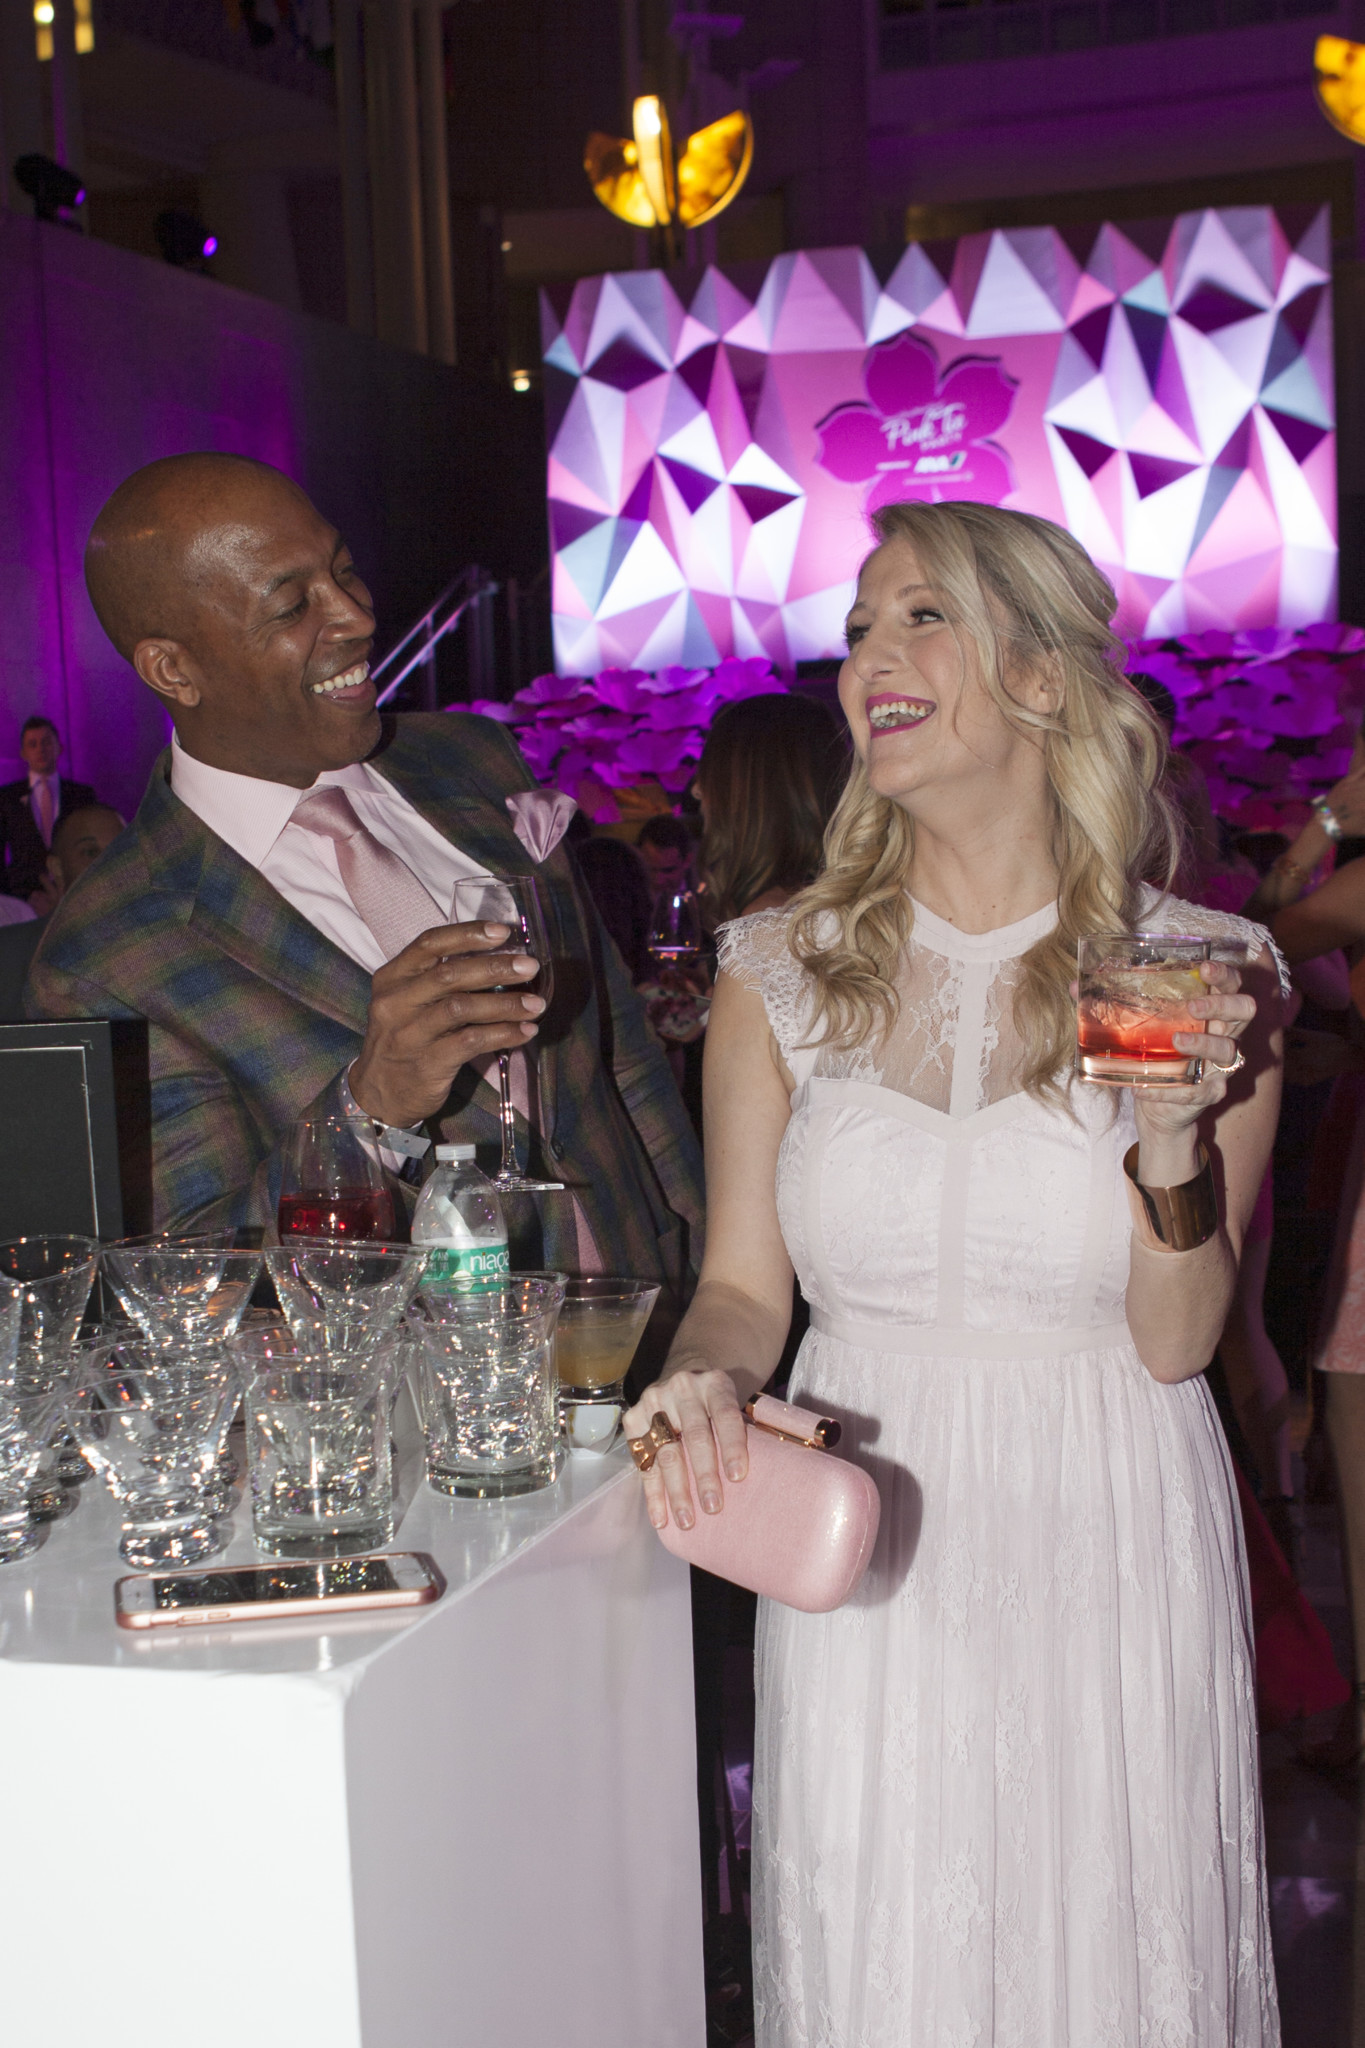 Cherry Blossom Pink Tie Party with A Lacey Perspective